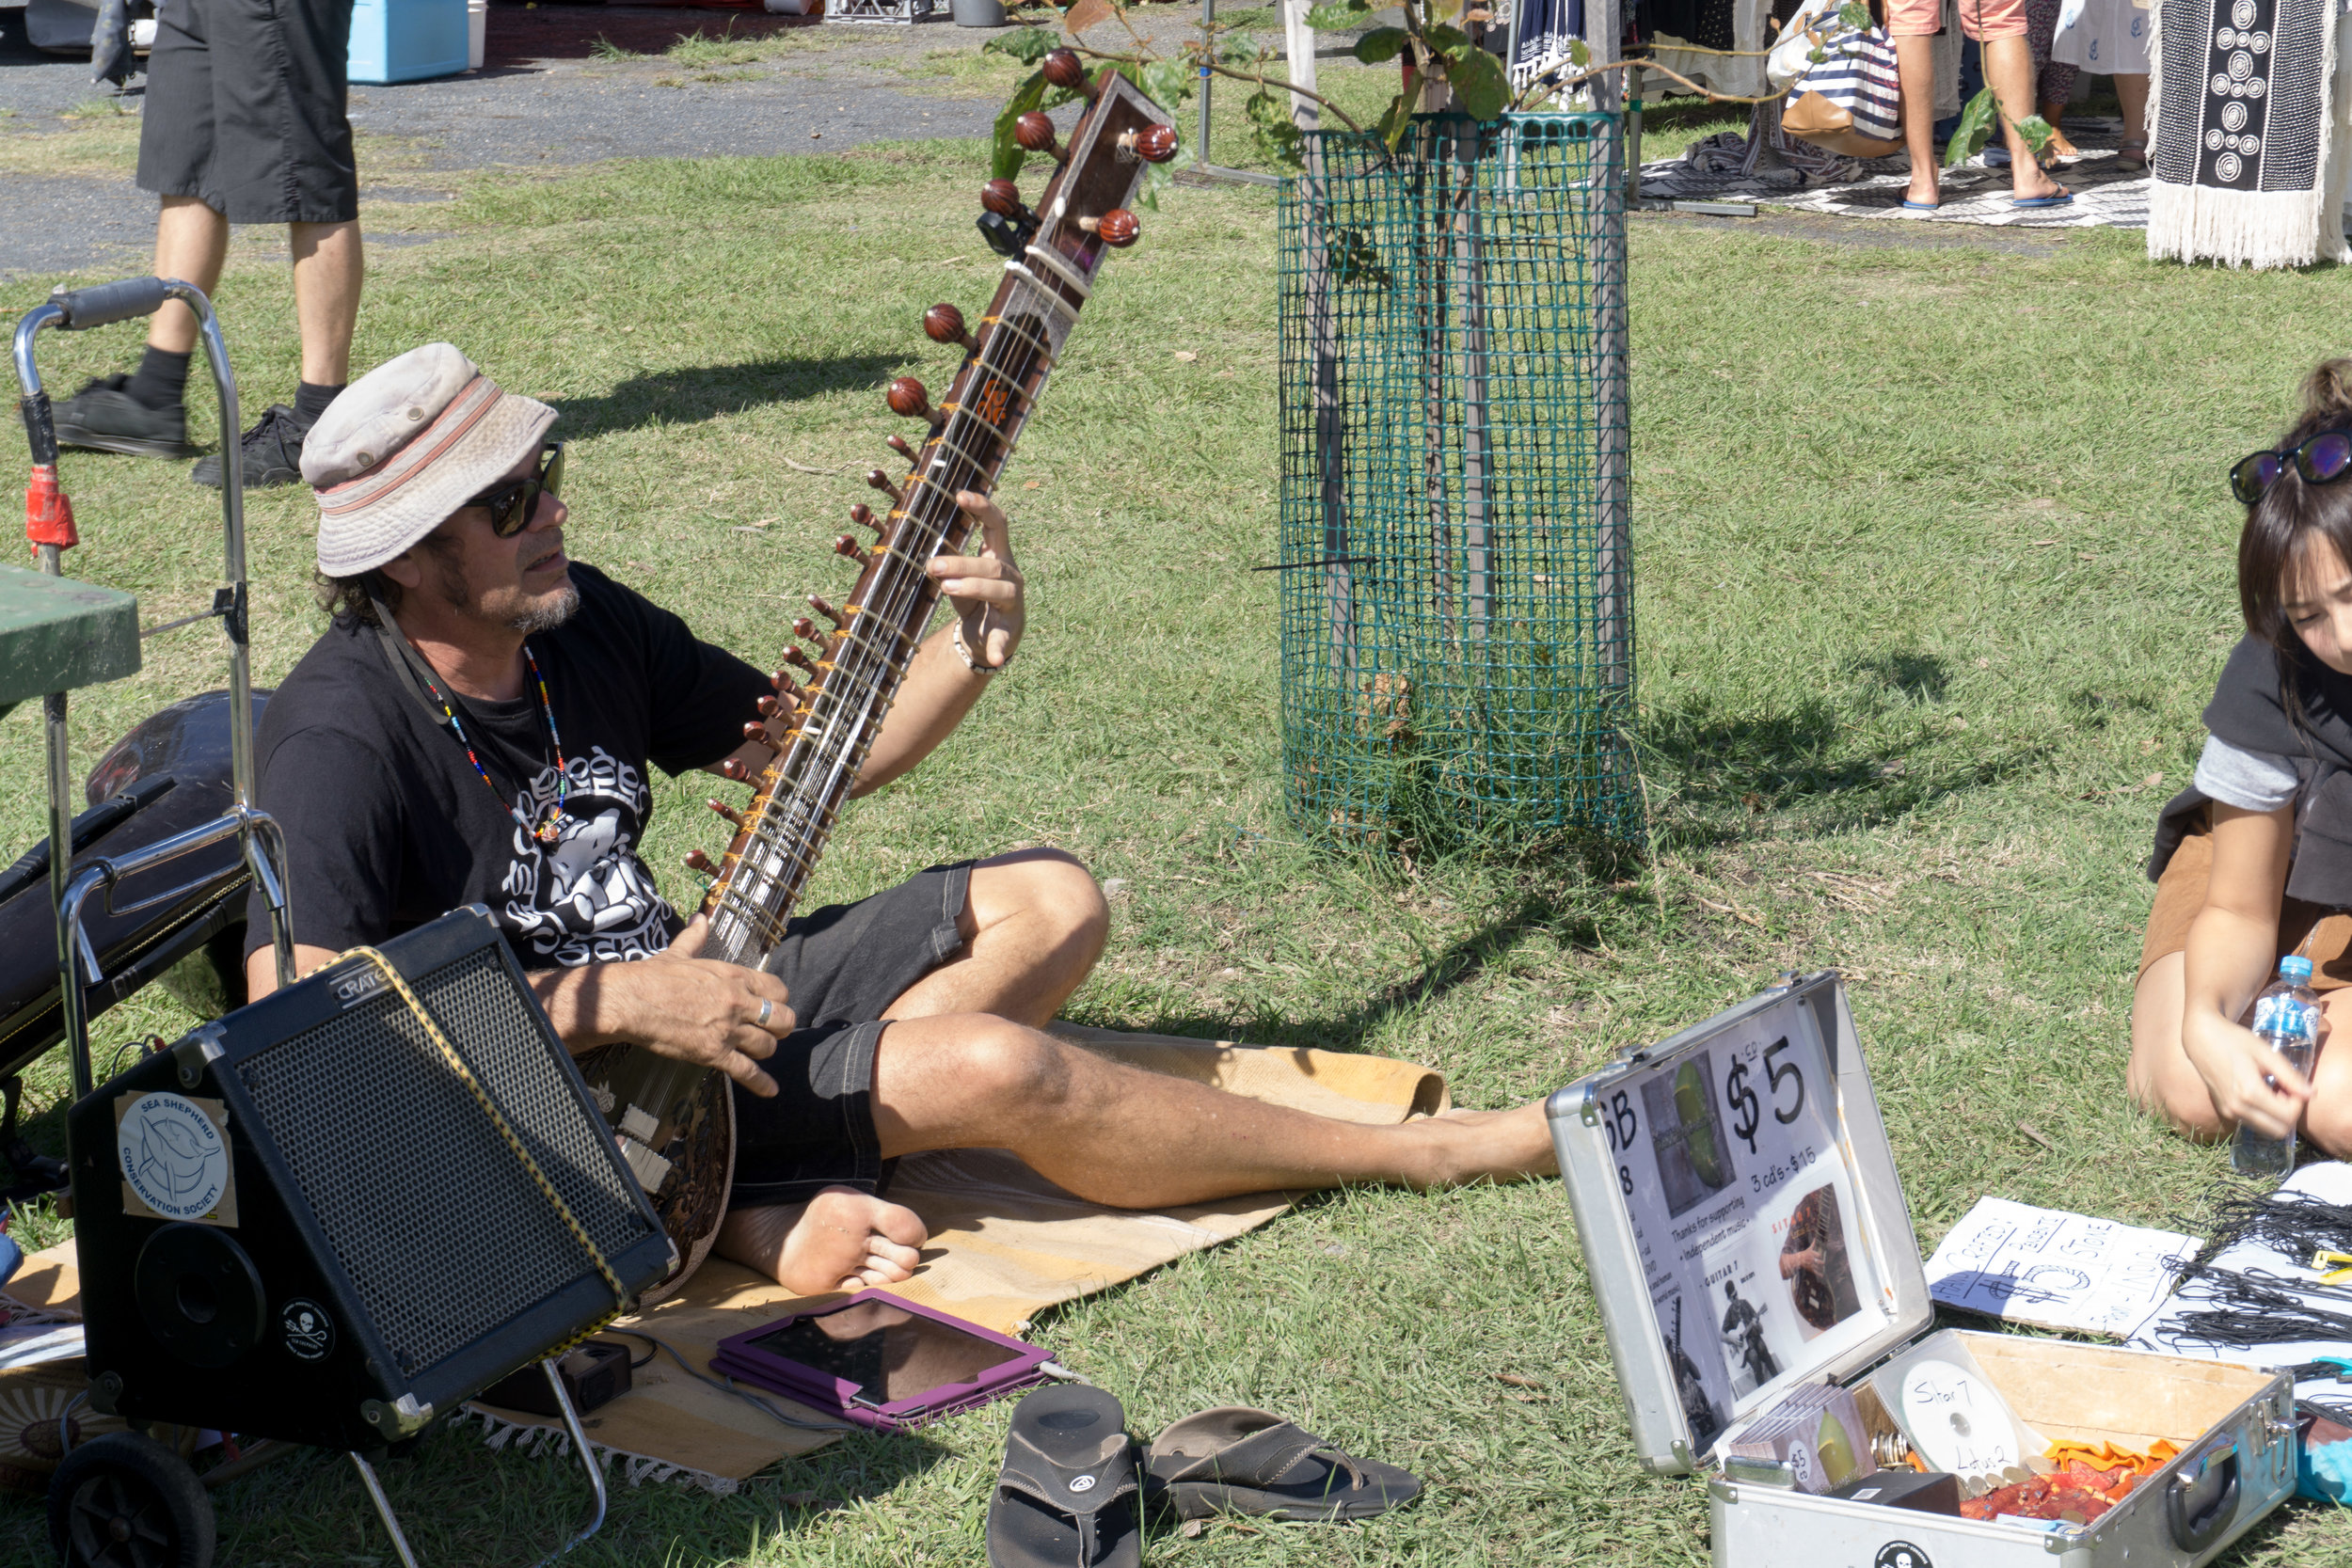 Tunes at the farmers market